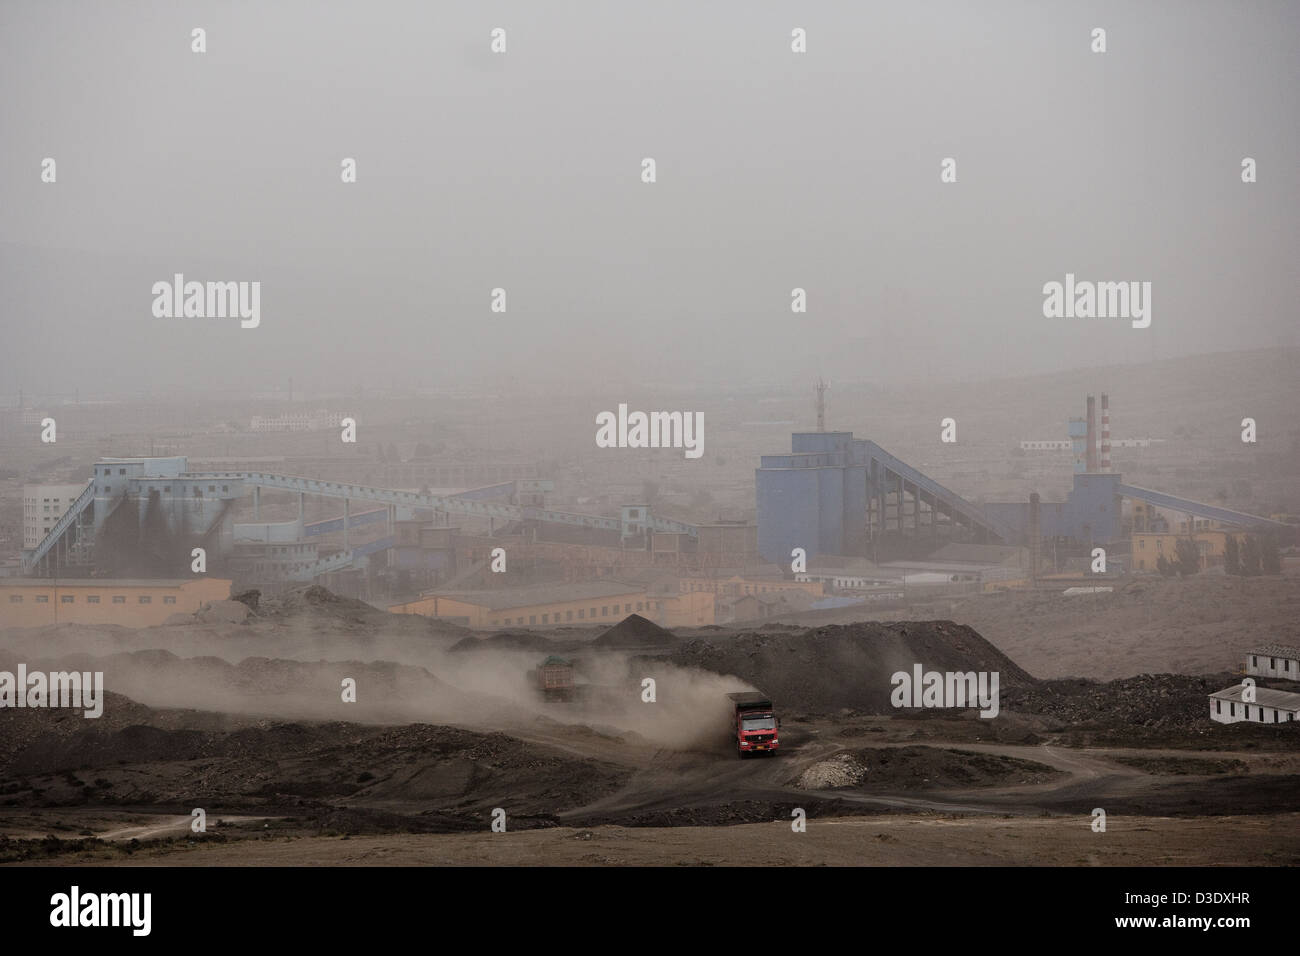 WUDA COAL FIELD, WU HAI, INNER MONGOLIA, CHINA - AUGUST 2007:  A coal truck makes his way over dusty dirt roads - Stock Image